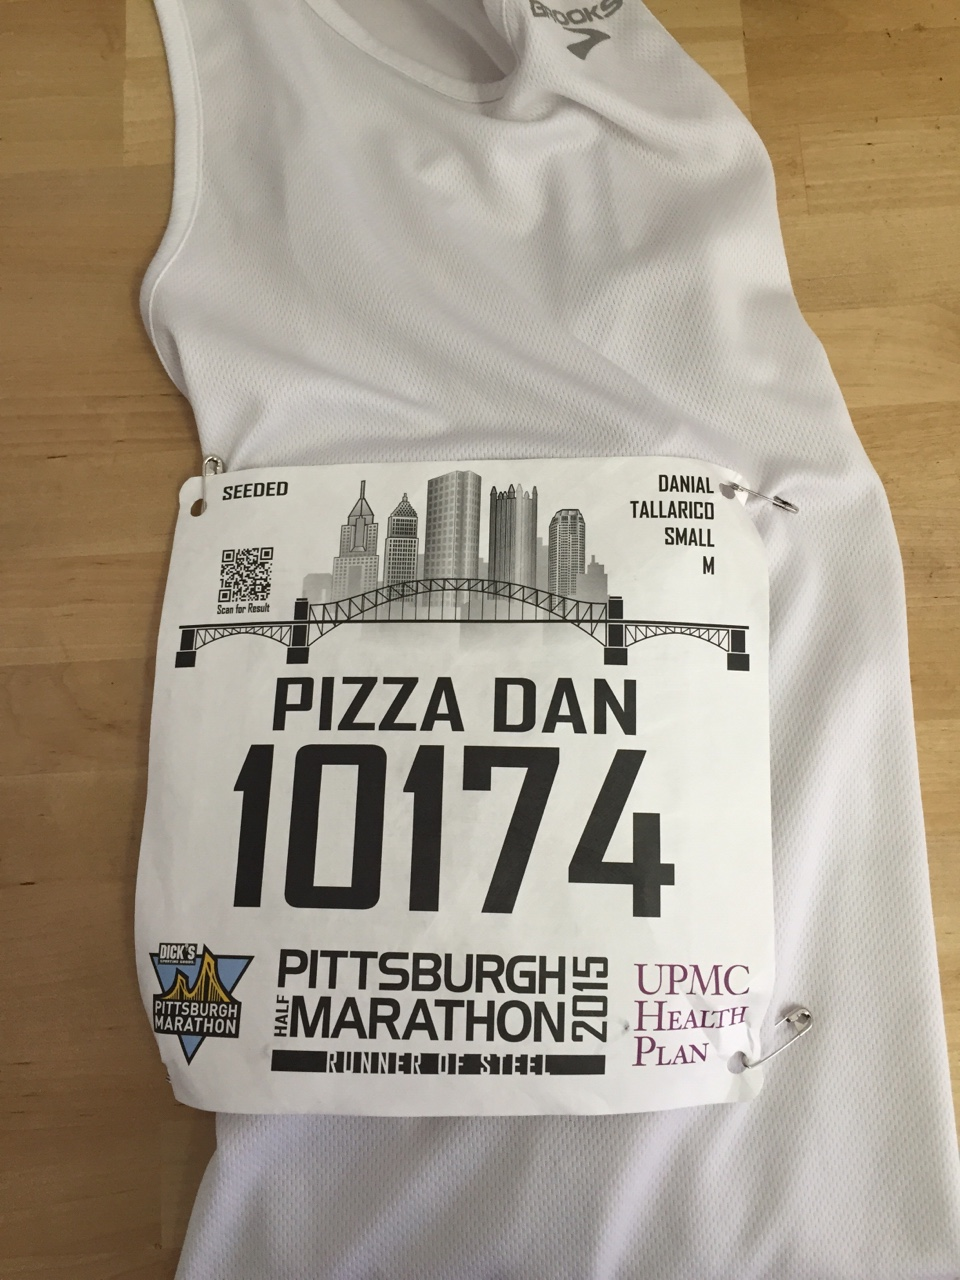 Pizza Dan is back in action. Look for me in tomorrow's Pittsburgh Half Marathon!